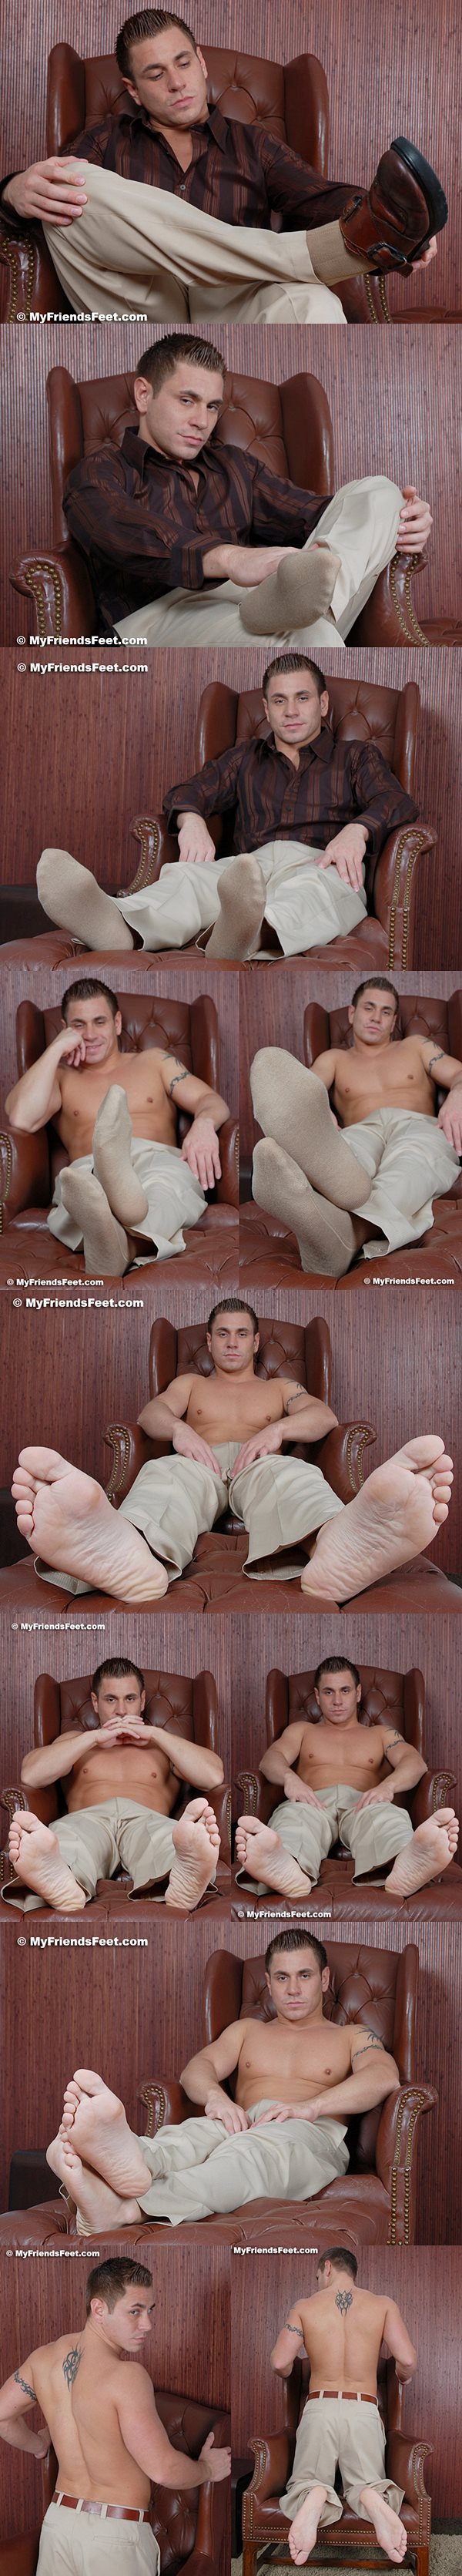 Dante (aka Dermott at Seancody) jacks off and shows his feet at Myfriendsfeet